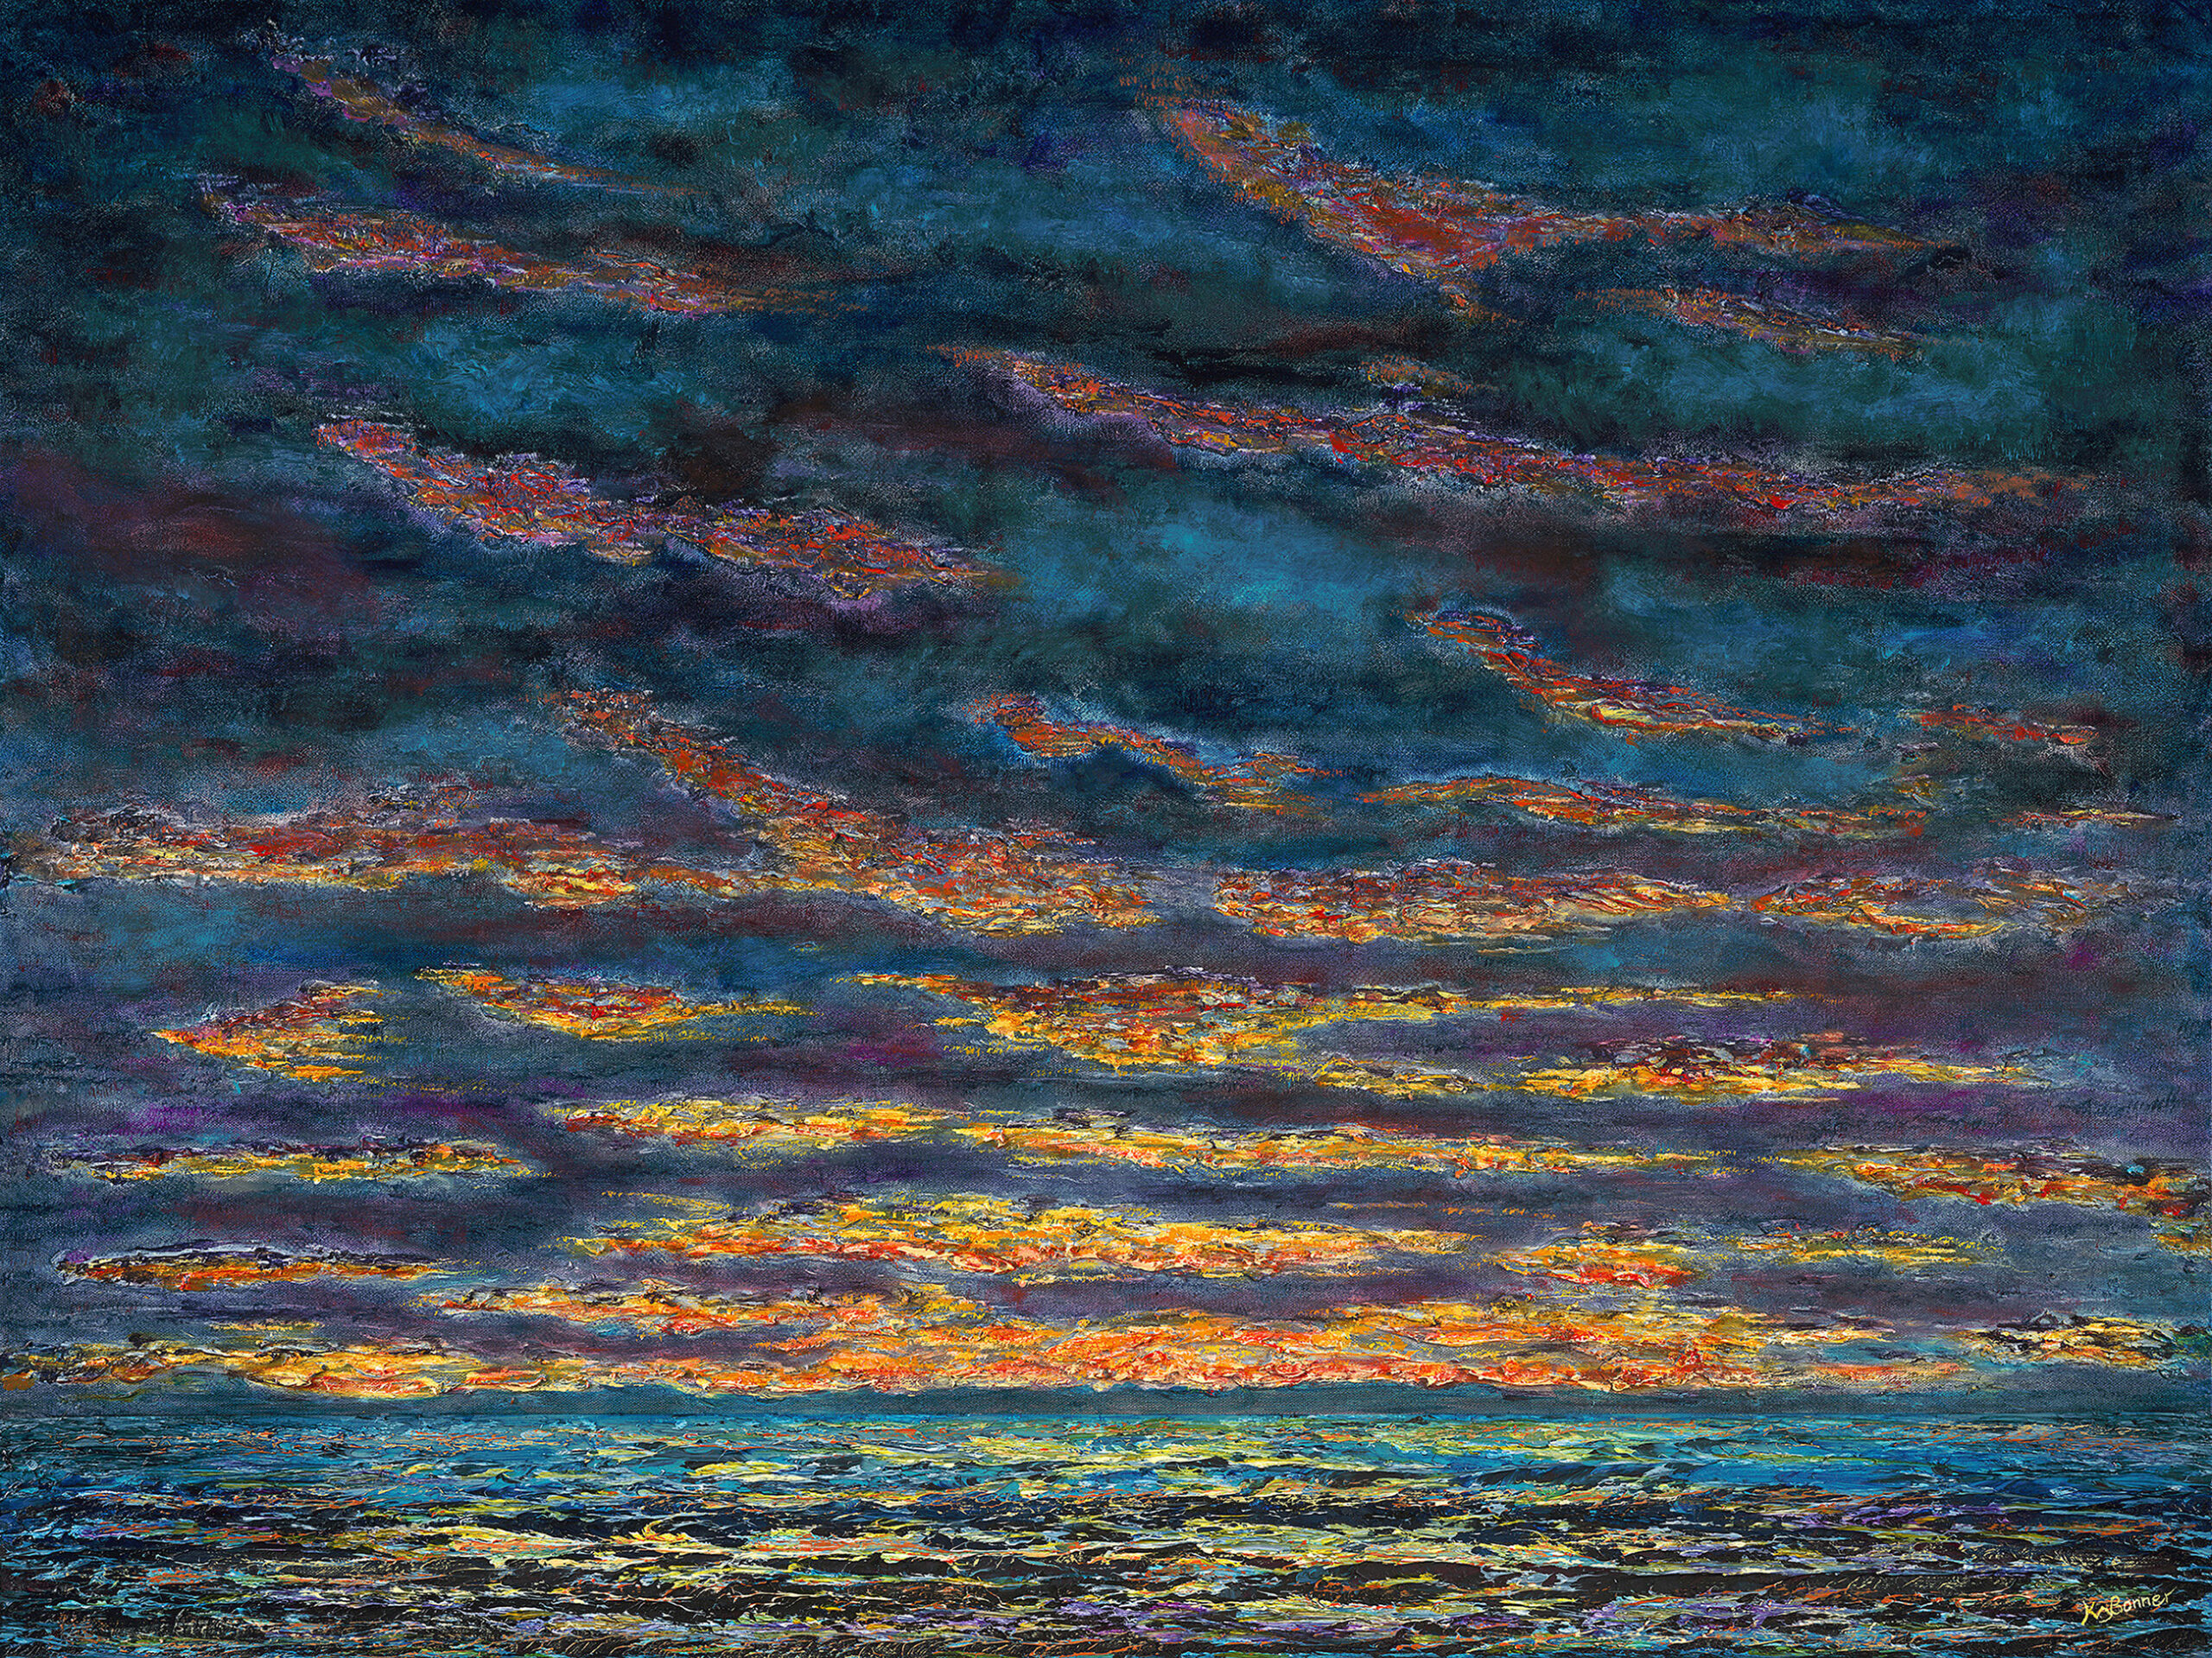 Morning has Broken | Seascapes | Ken Bonner Original Oil Paintings | Santa Fe New Mexico